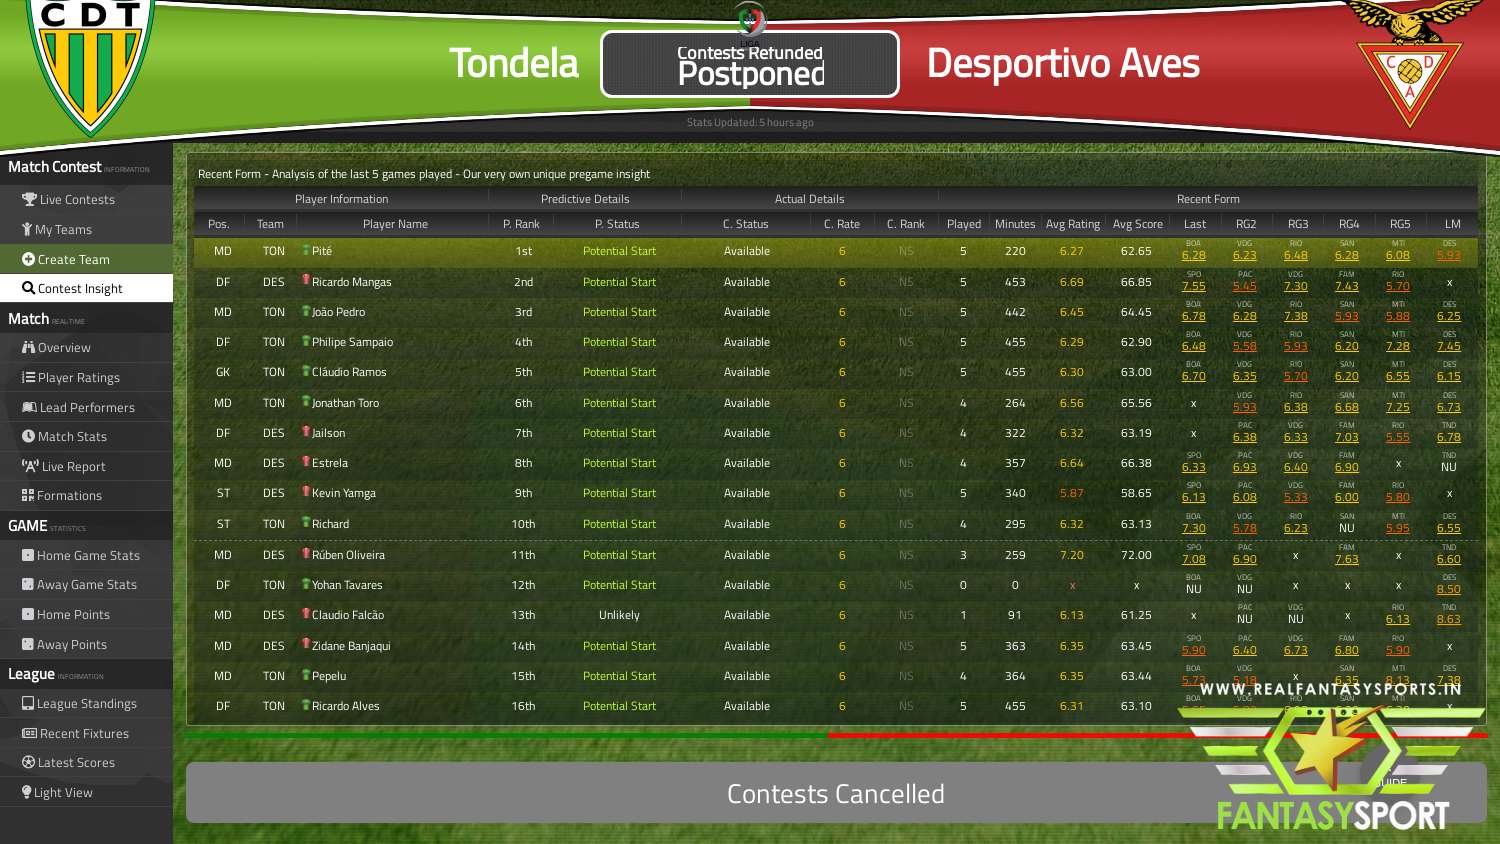 Fantasy Football Tondela Vs Desportivo Aves Saturday 21st March 2020